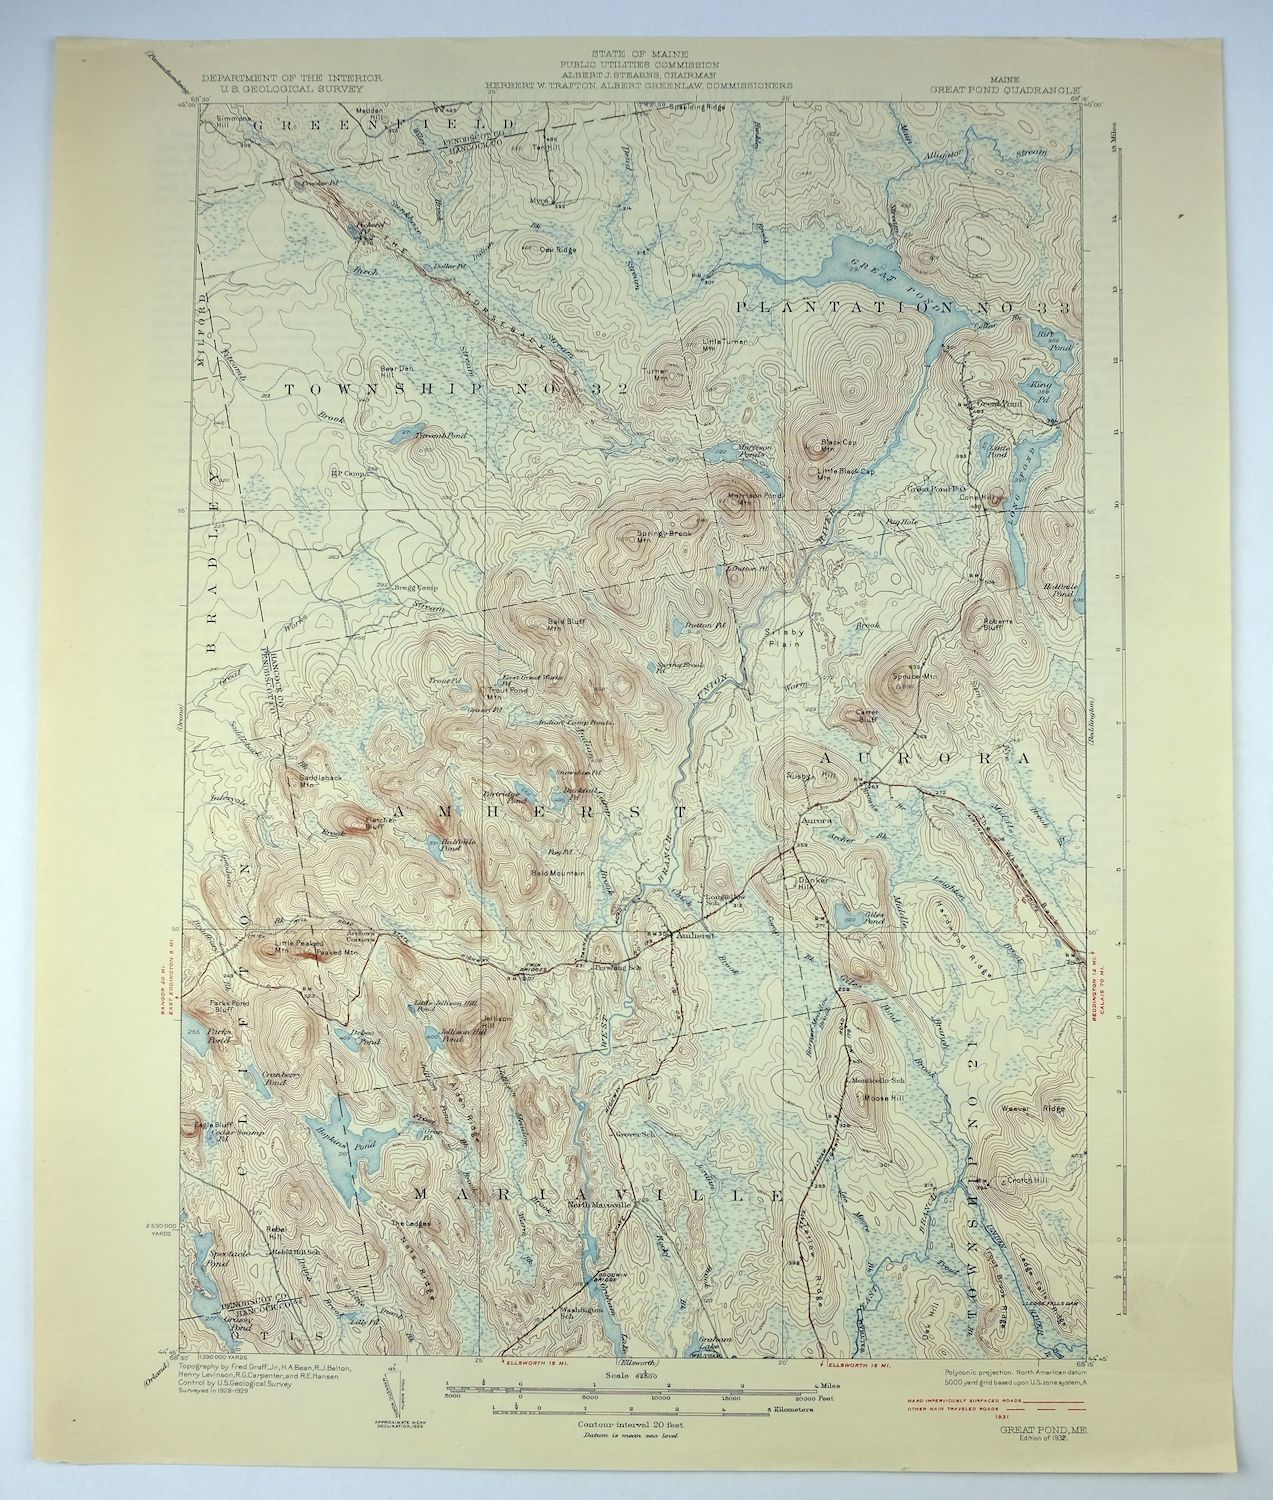 Topographic Map Usgs.1932 Great Pond Maine Bangor Old Town Vintage Original Usgs Topo